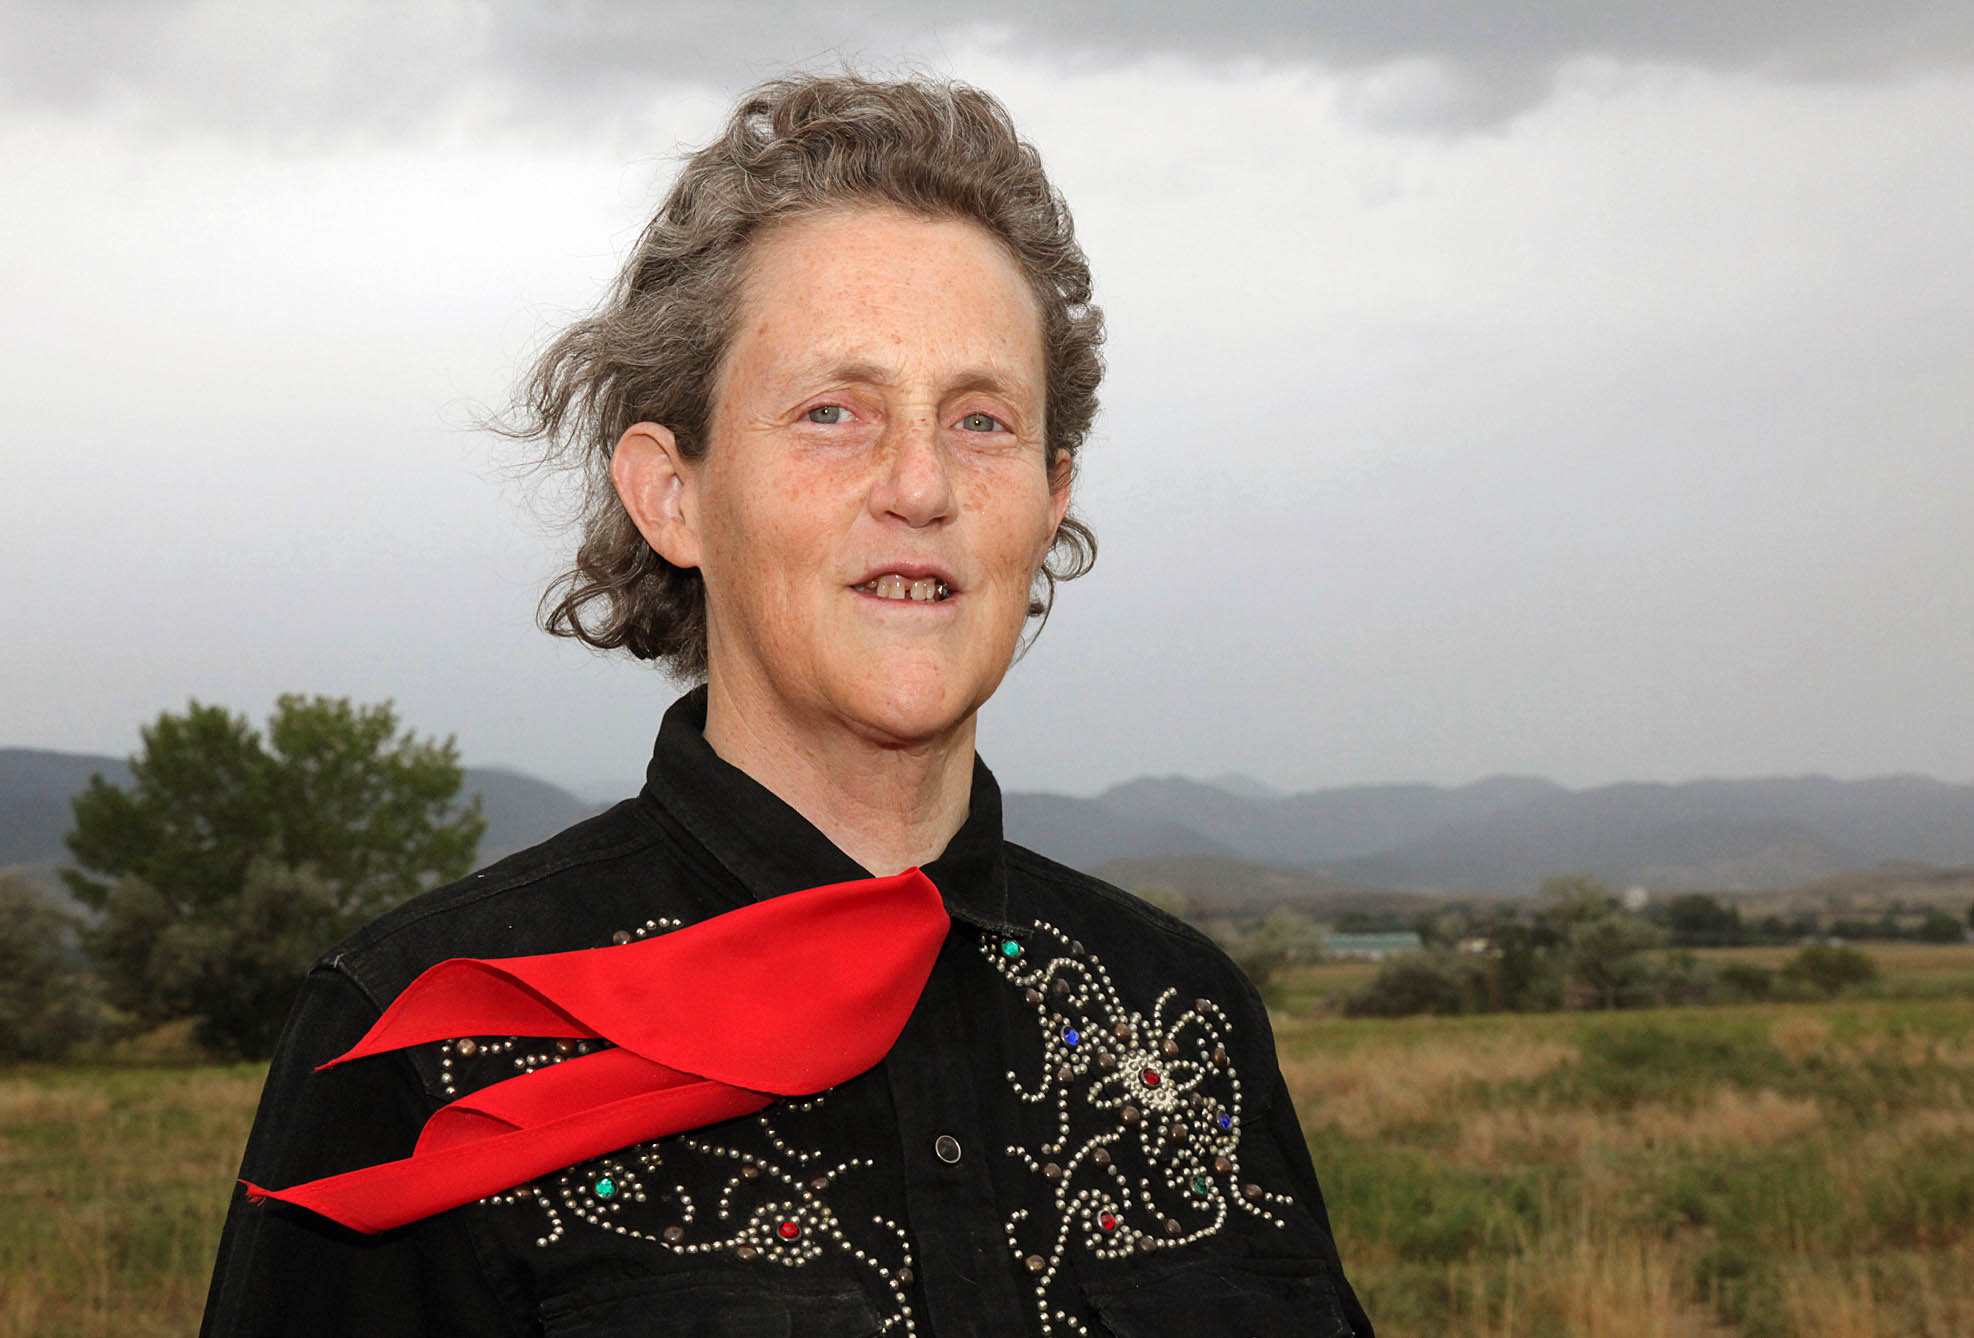 Doctors Diary Why Do People With Autism >> Temple Grandin Animal Behaviorist And Autism Leader Lectures Nov